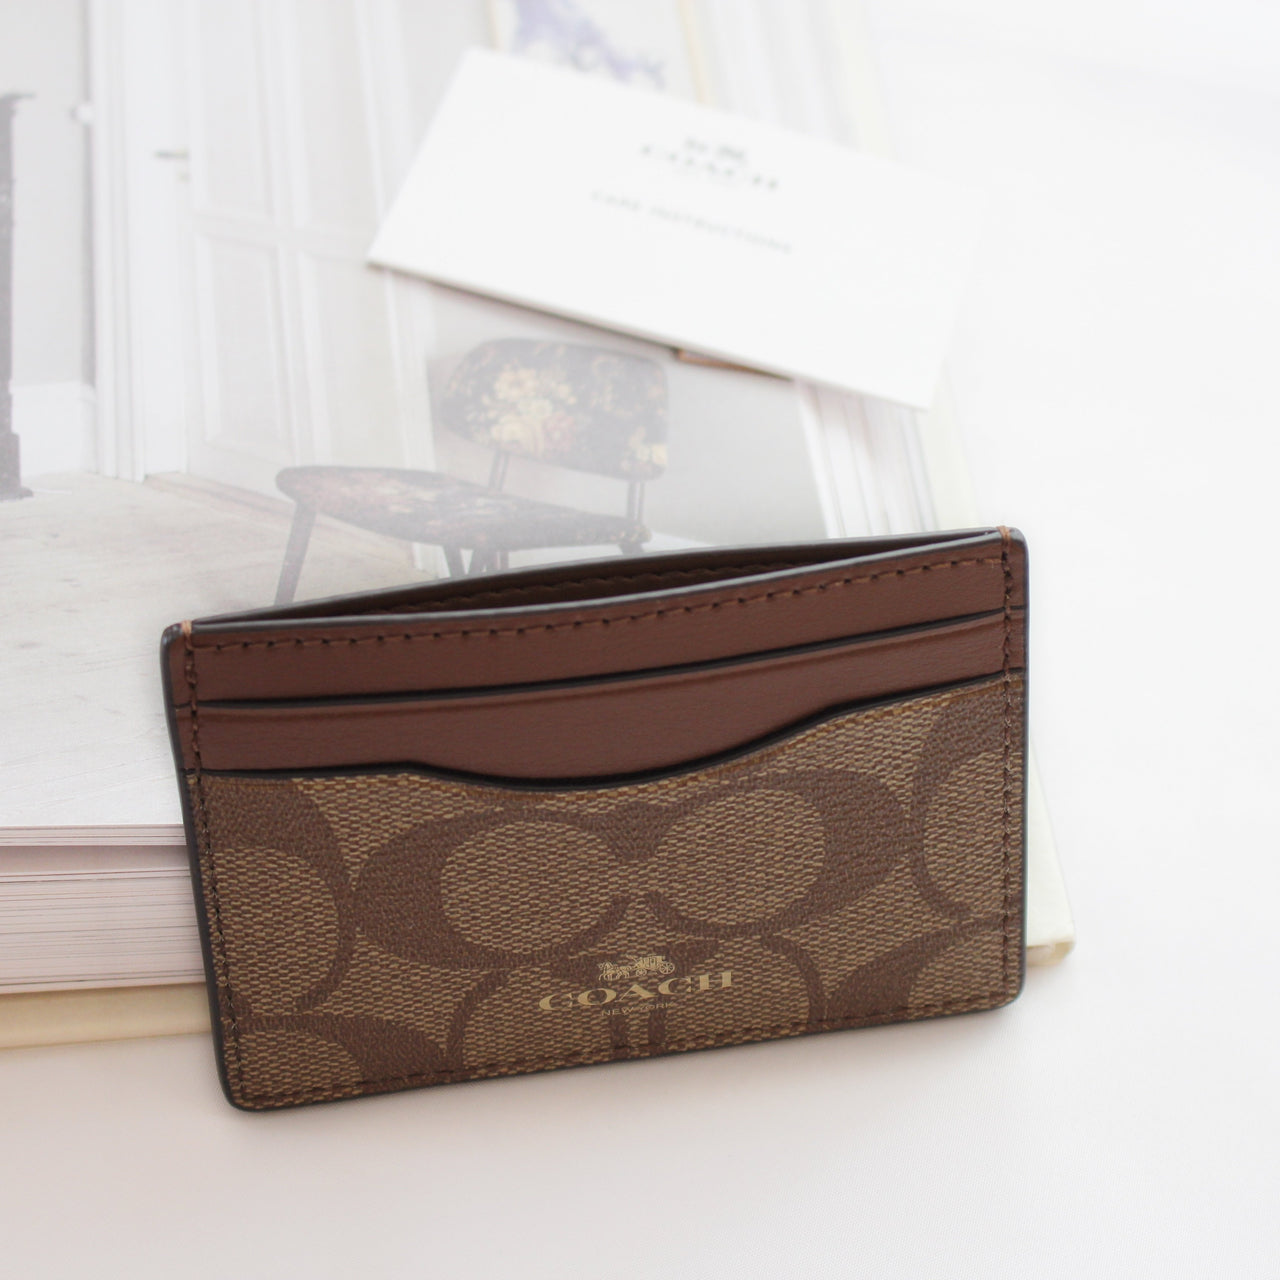 COACH CARD CASE IN SIGNATURE CANVAS - Lovely Madness